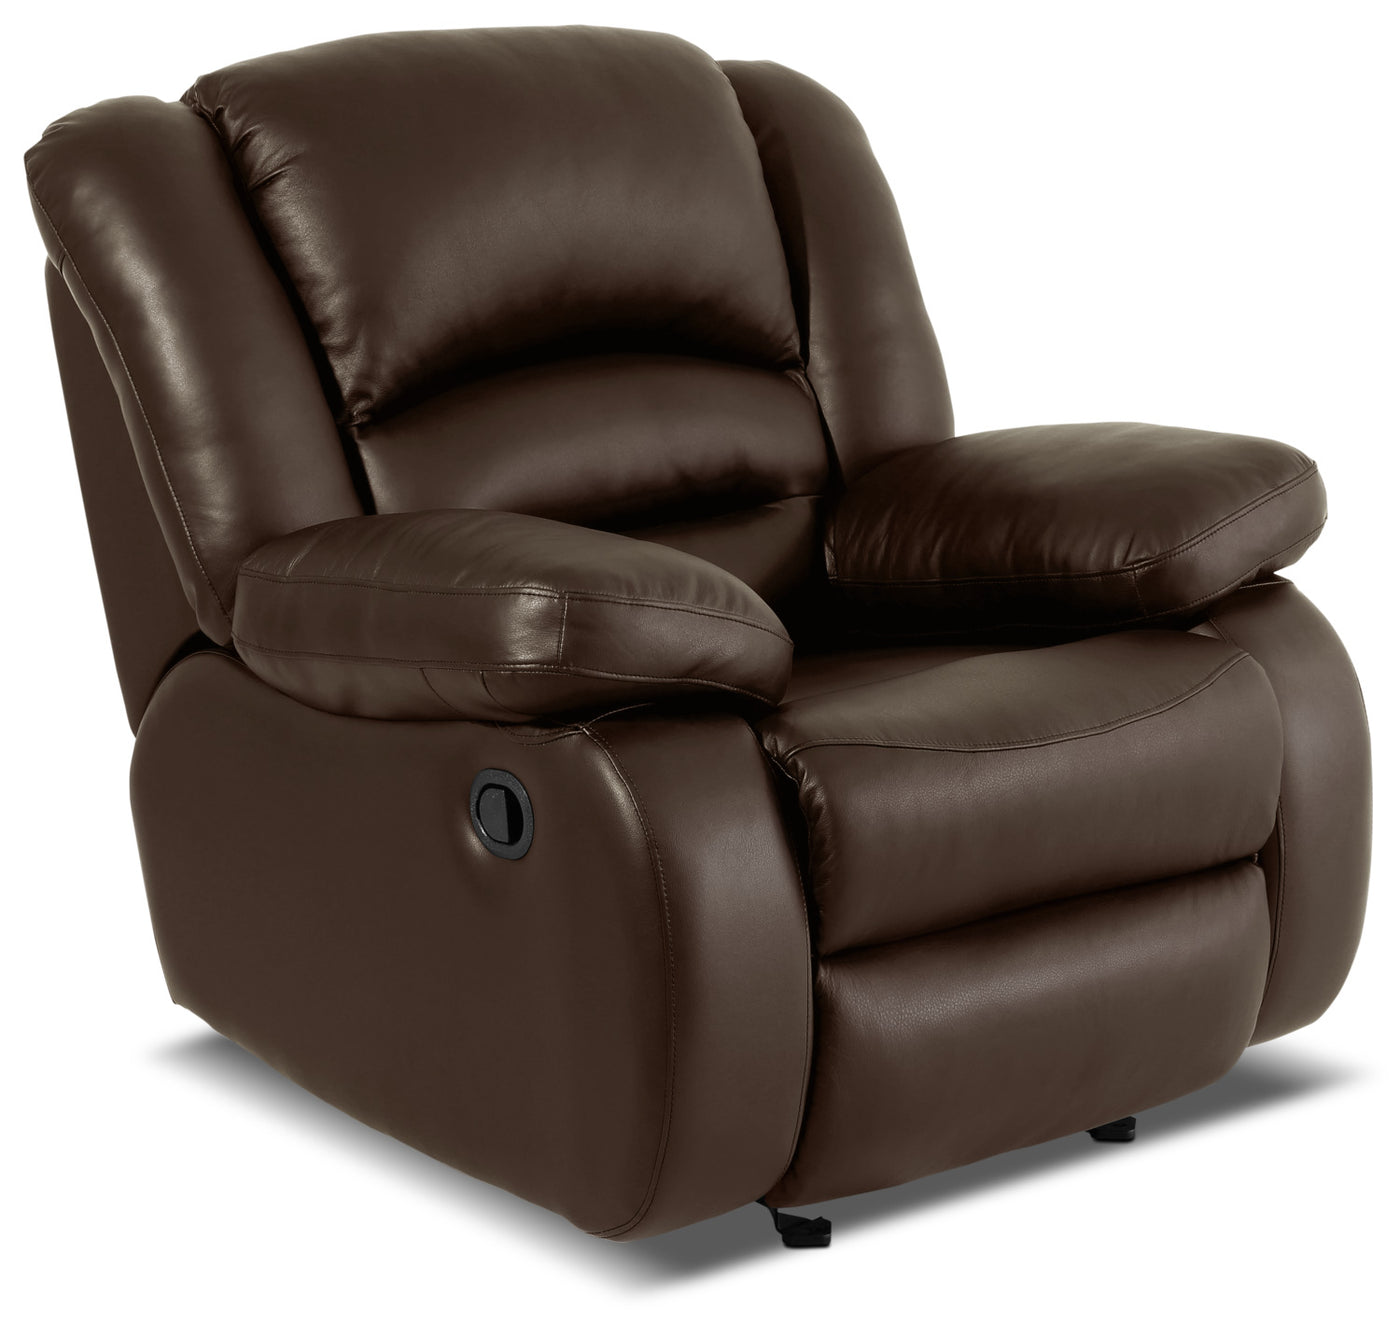 official photos d9a30 34ead Toreno Genuine Leather Reclining Glider Chair – Brown